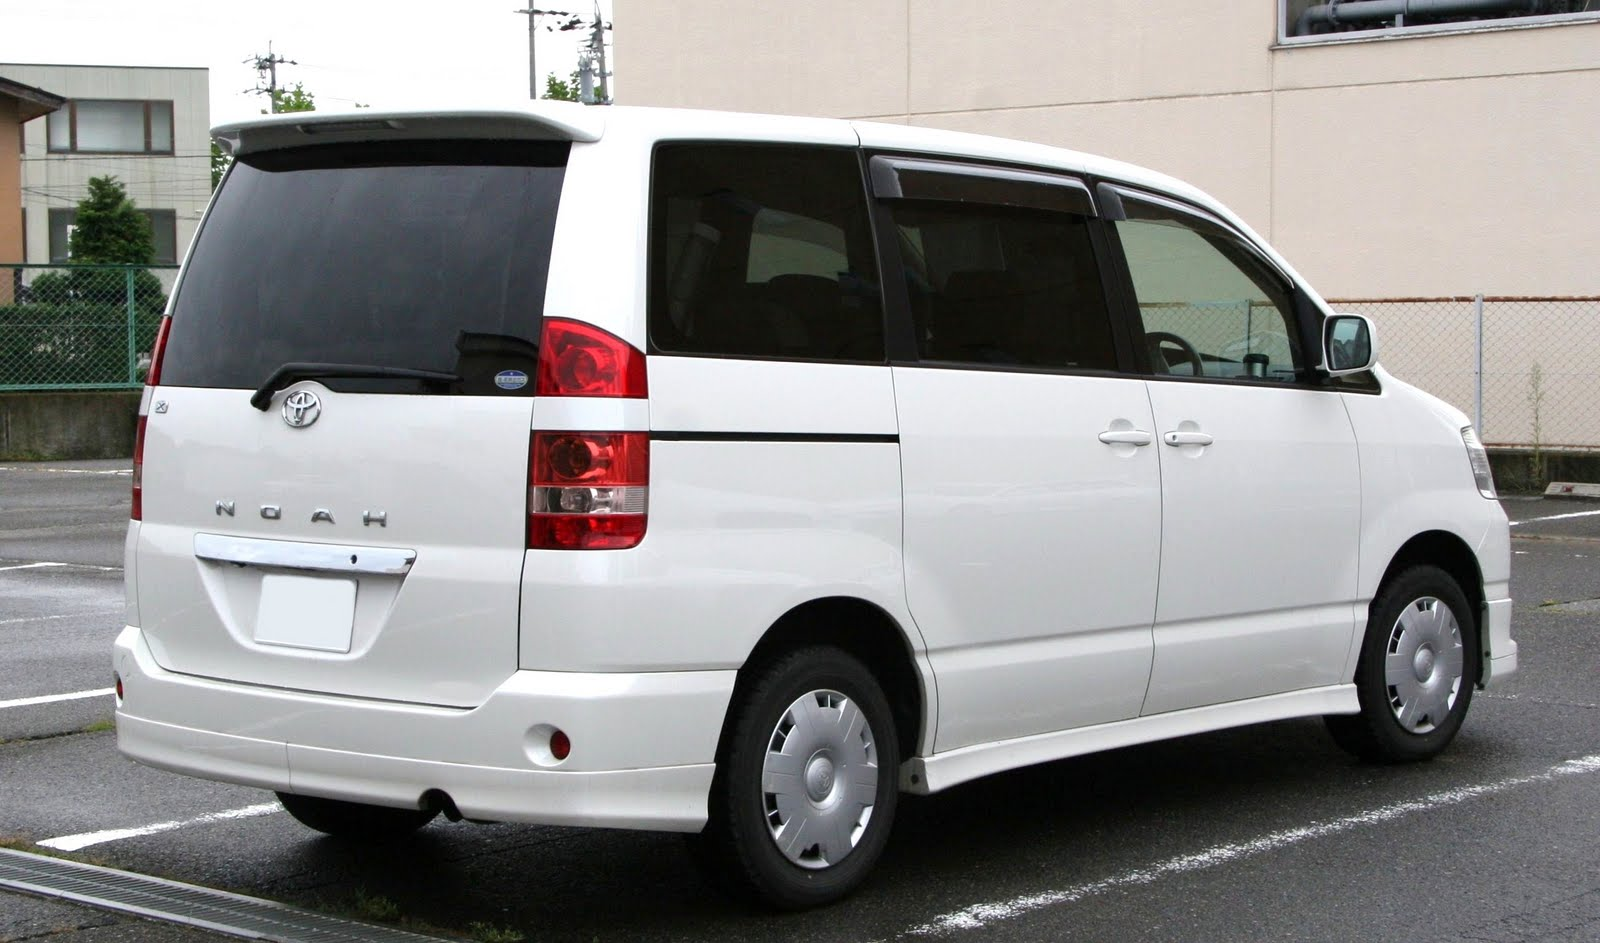 hight resolution of the rear view of the noah toyota voxy